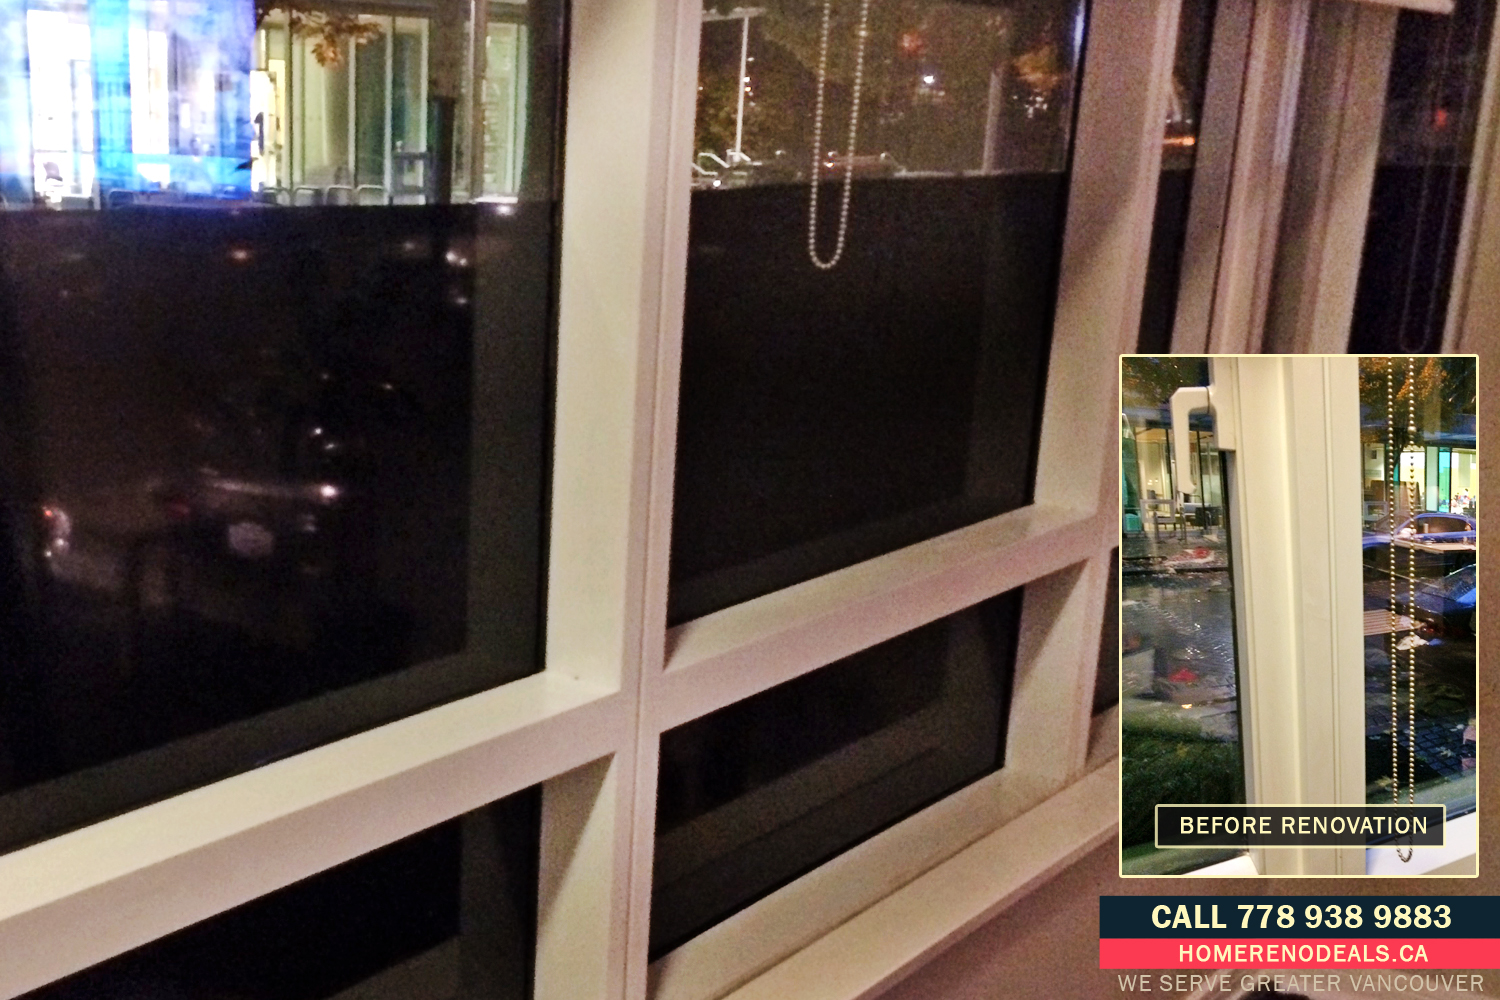 Who can install window privacy film? Home Renovation Deals in Greater Vancouver, BC